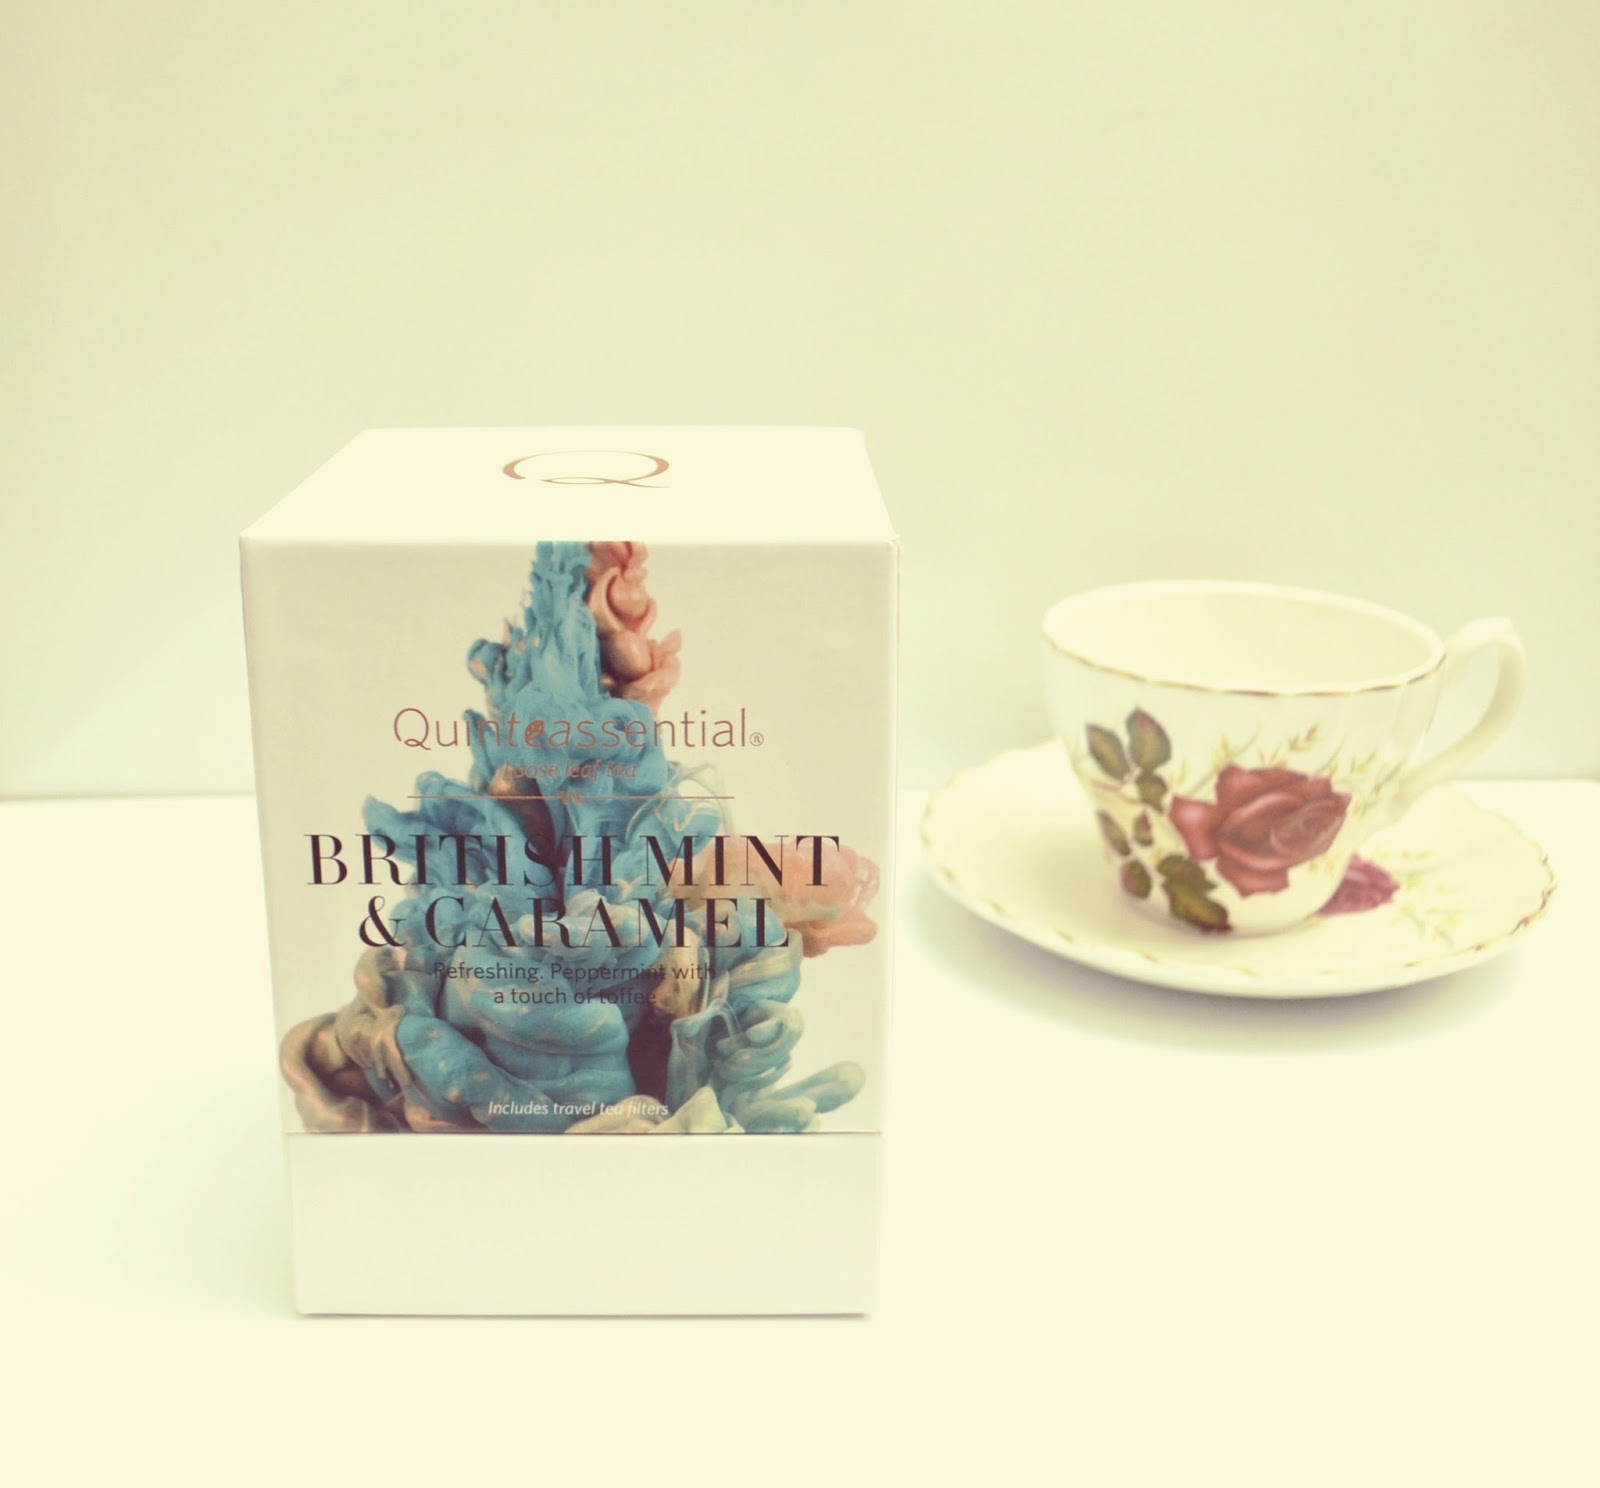 Quinteassential Teas British Mint & Caramel Review